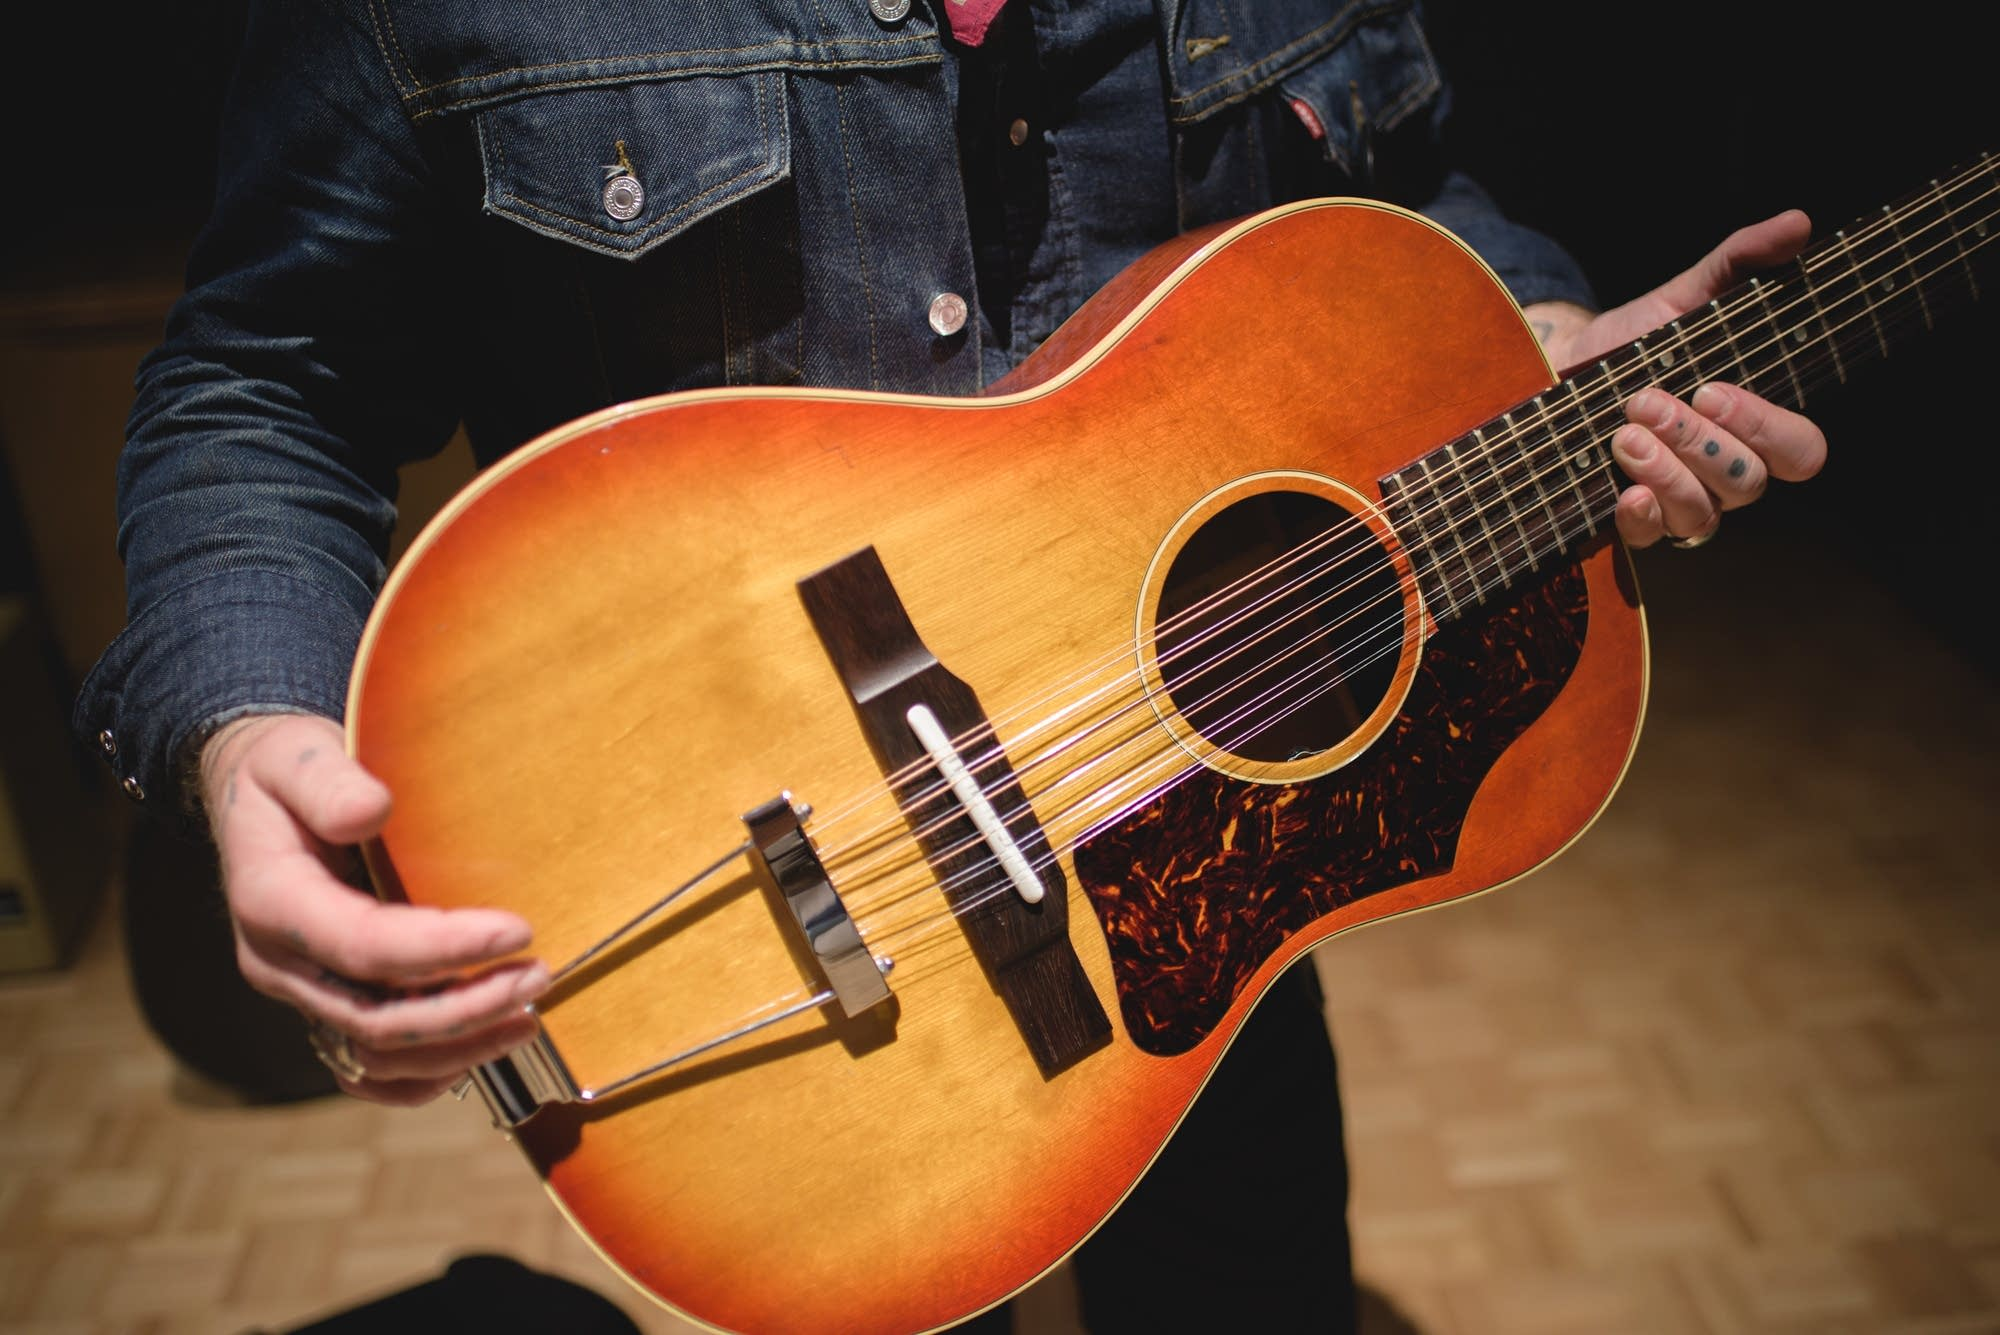 Nathaniel Rateliff, Gibson B-25 12 string 1